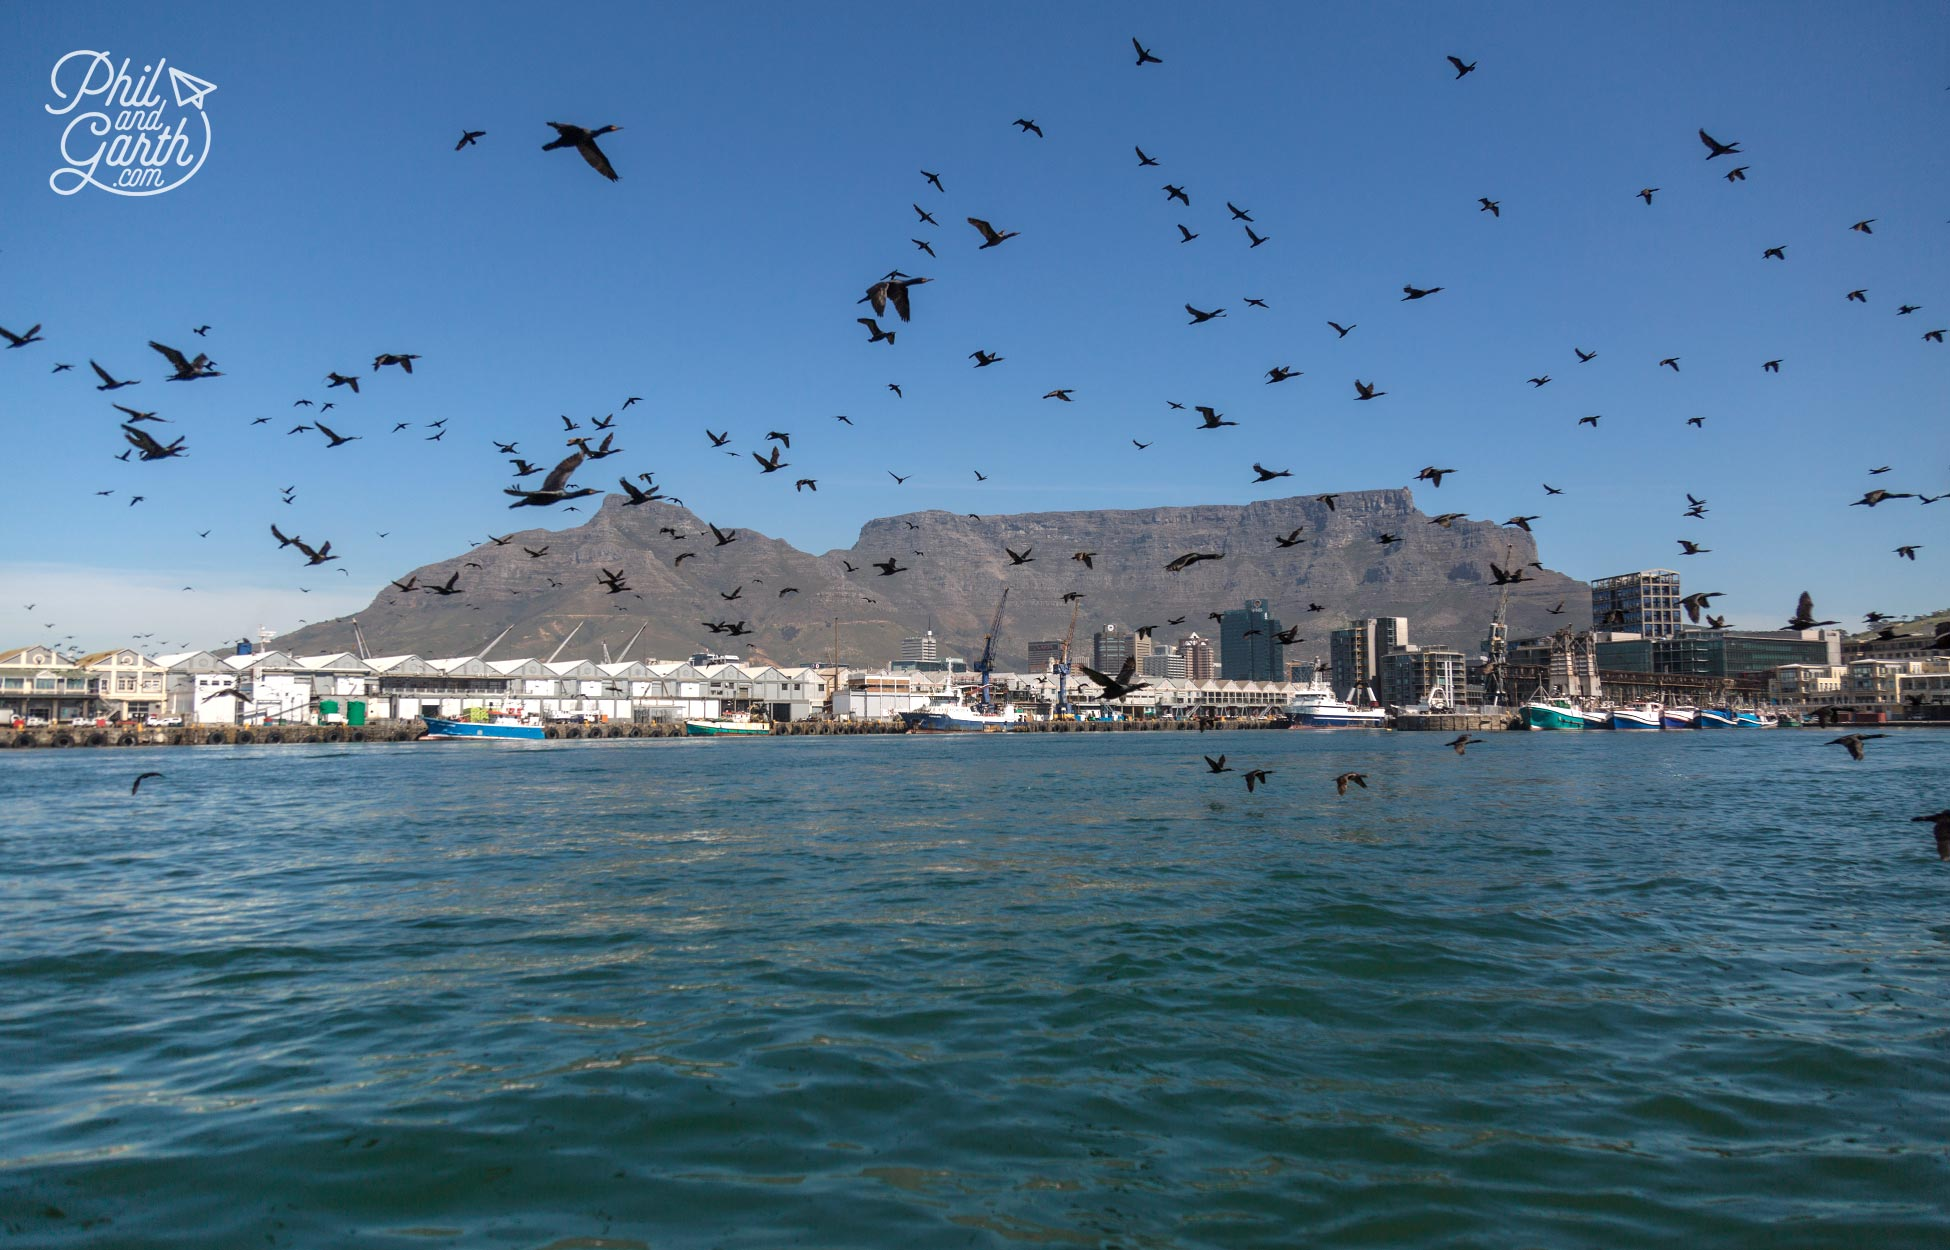 Cruising the harbour waters, perfect photos of Table Mountain